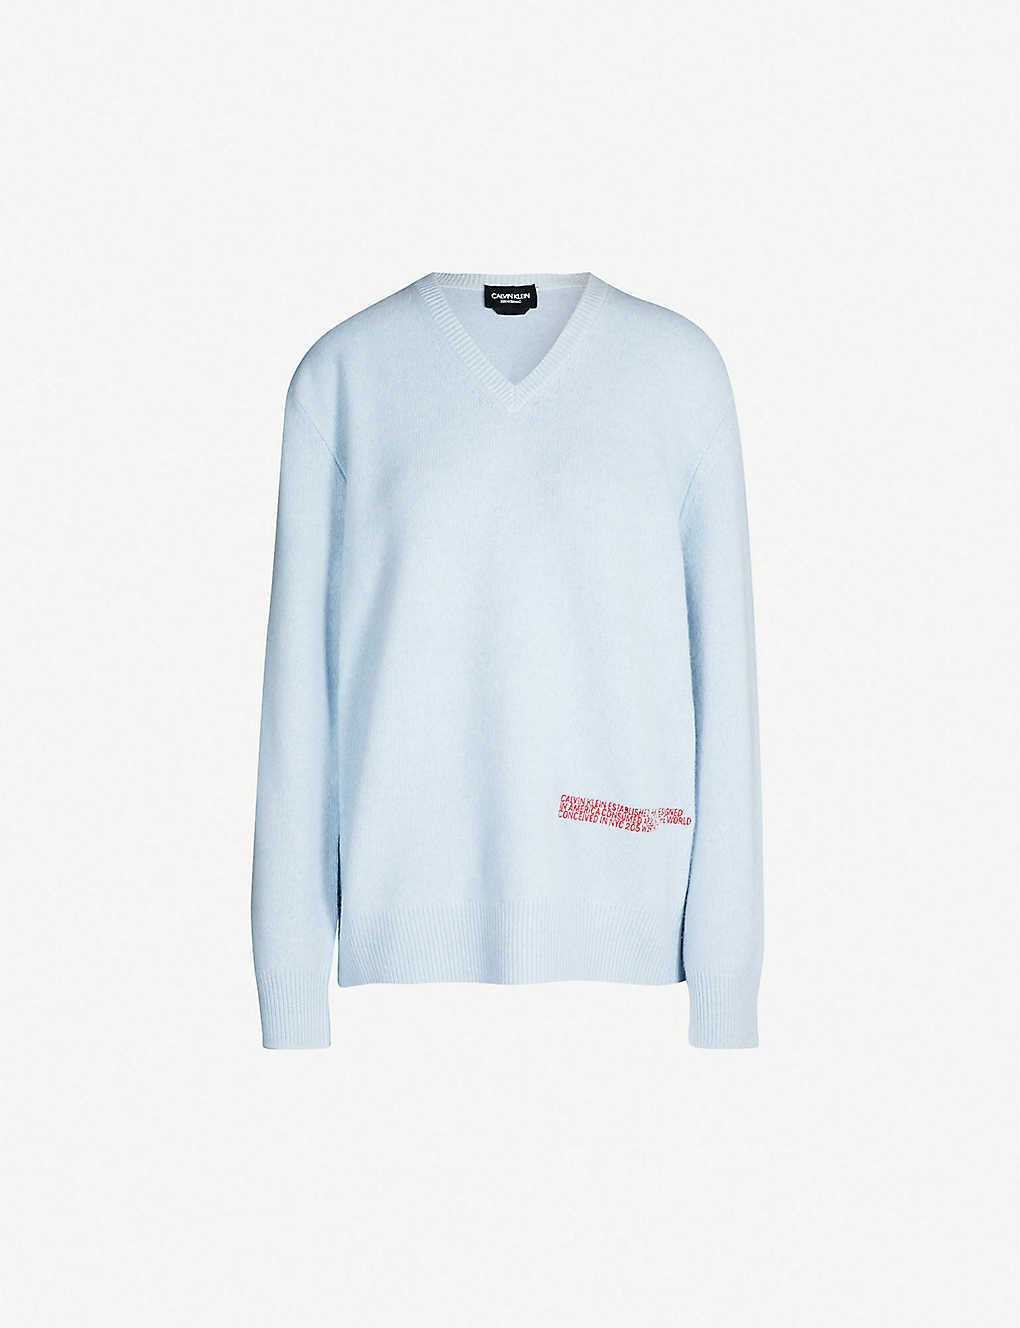 3c55992bac13 CALVIN KLEIN 205W39NYC - Logo-embroidered V-neck wool and cotton ...